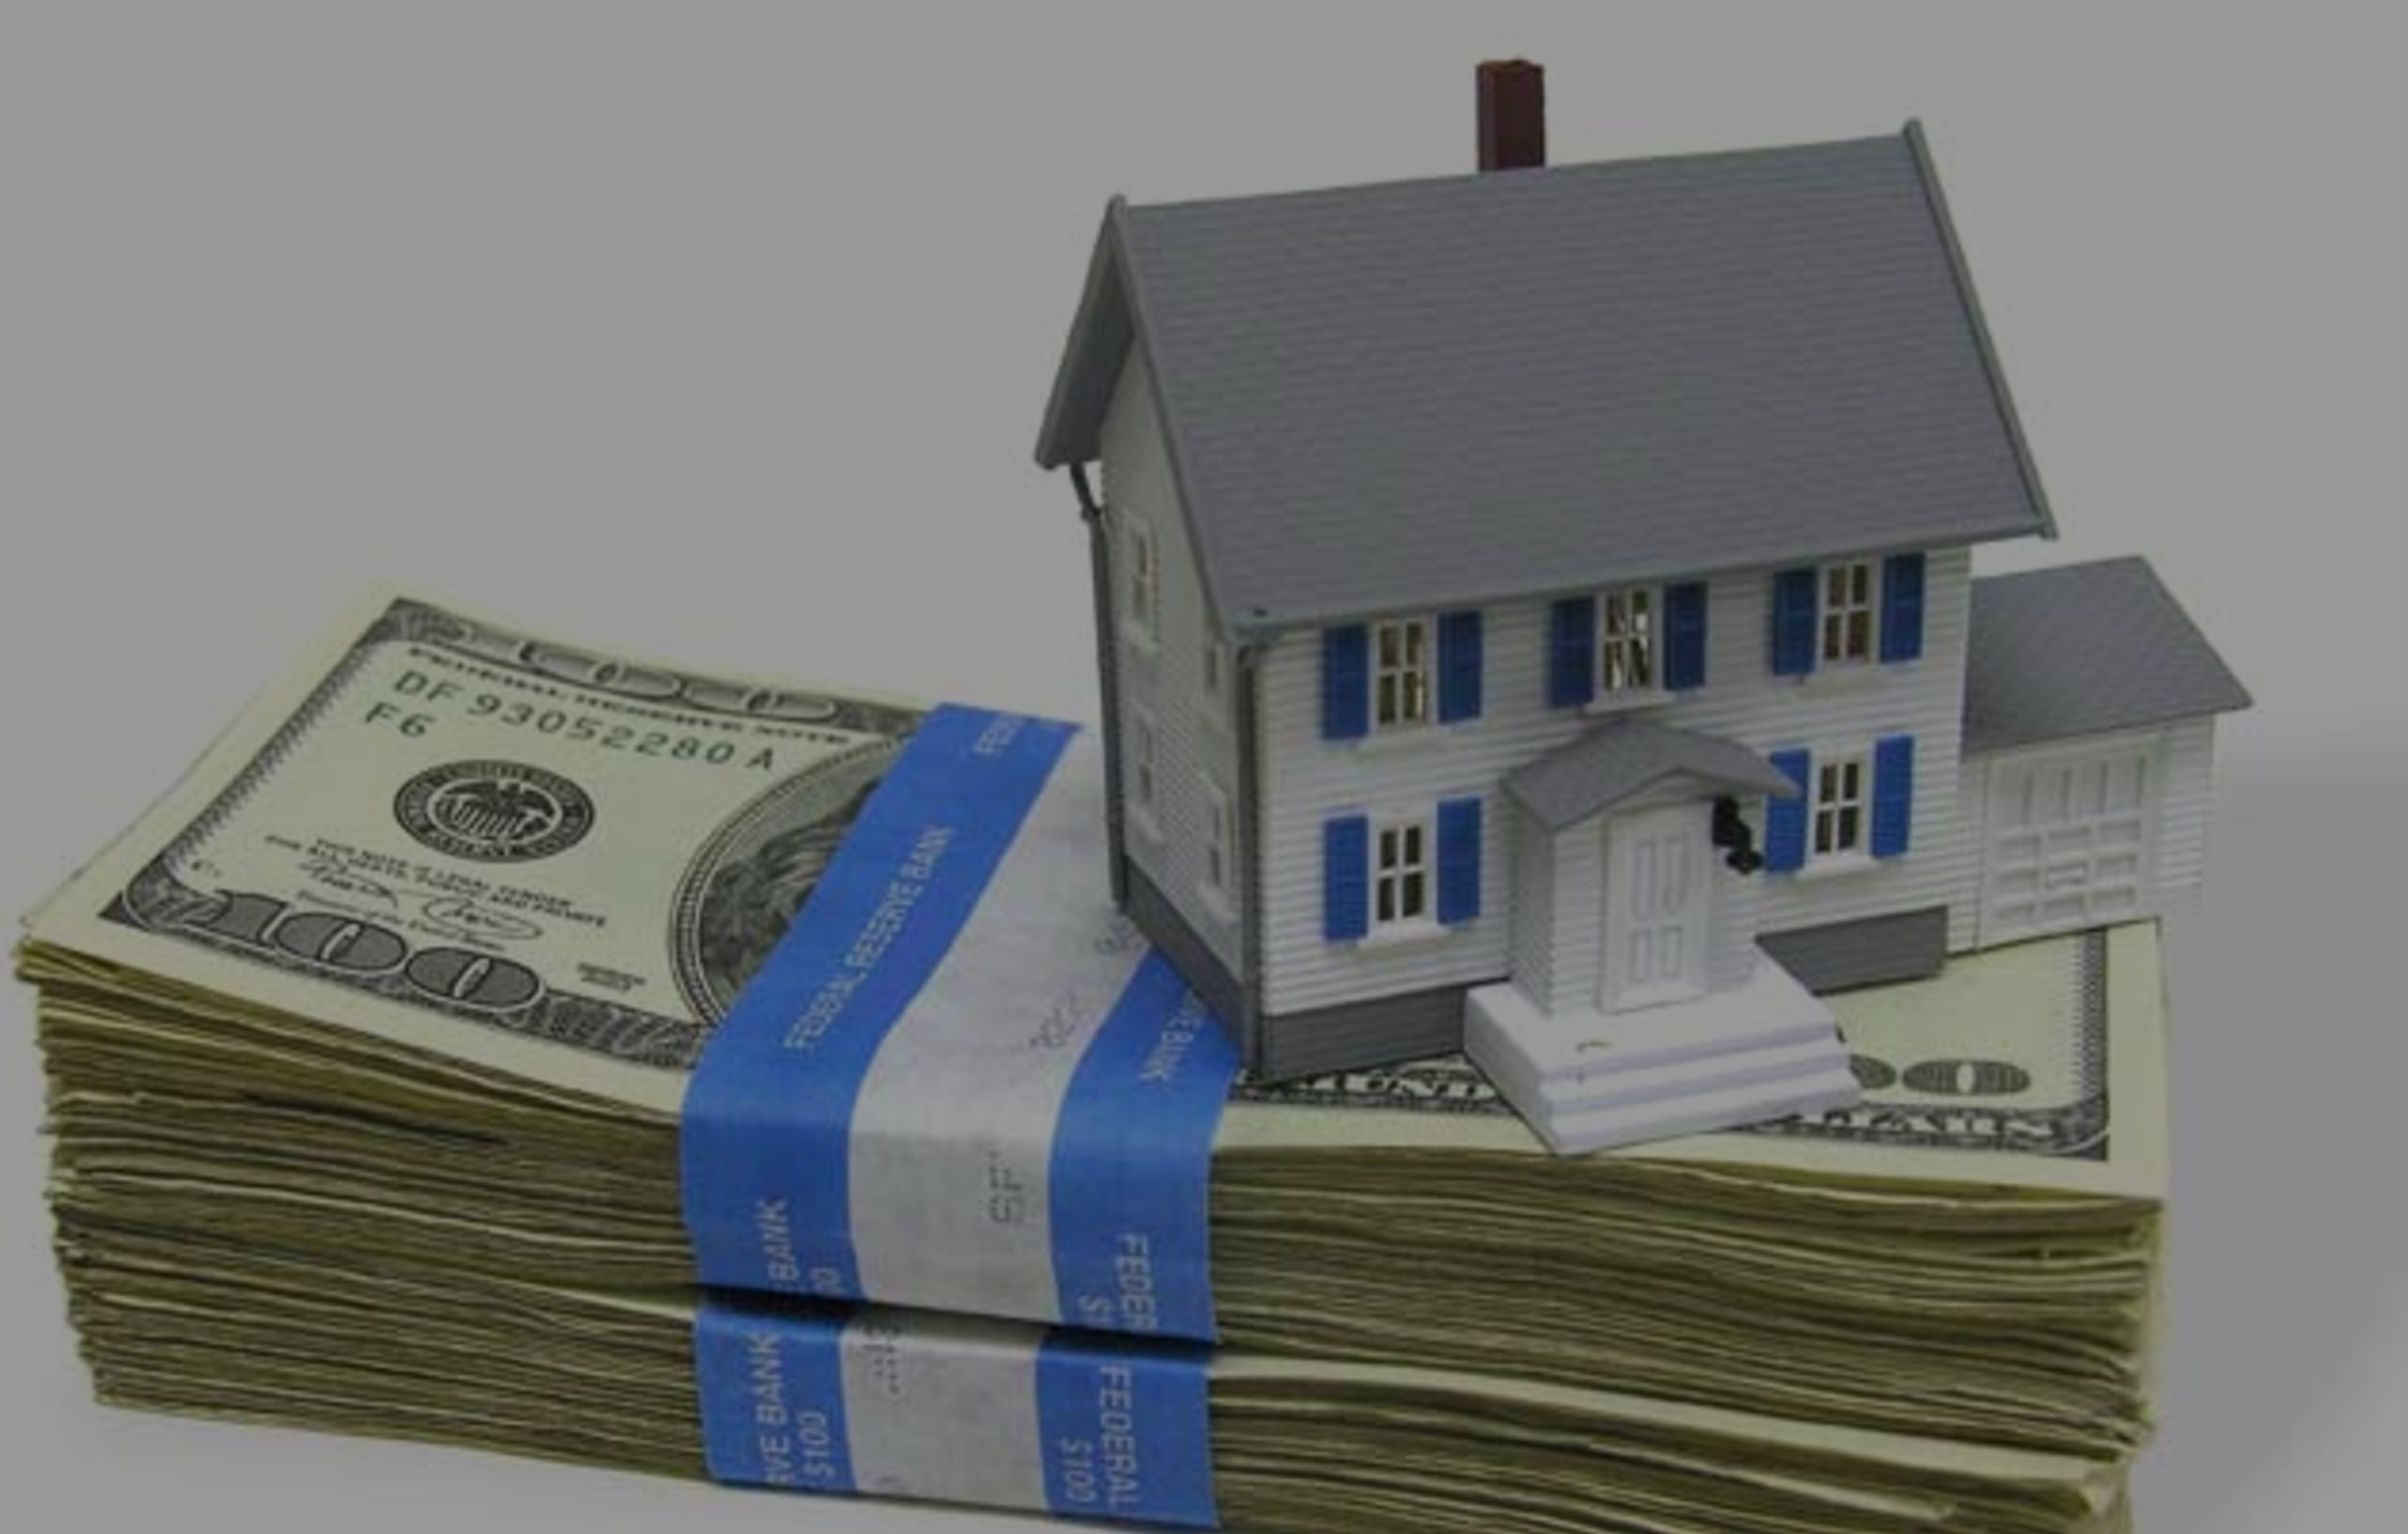 7 White Lies That Can Hurt Your Homebuying Chances